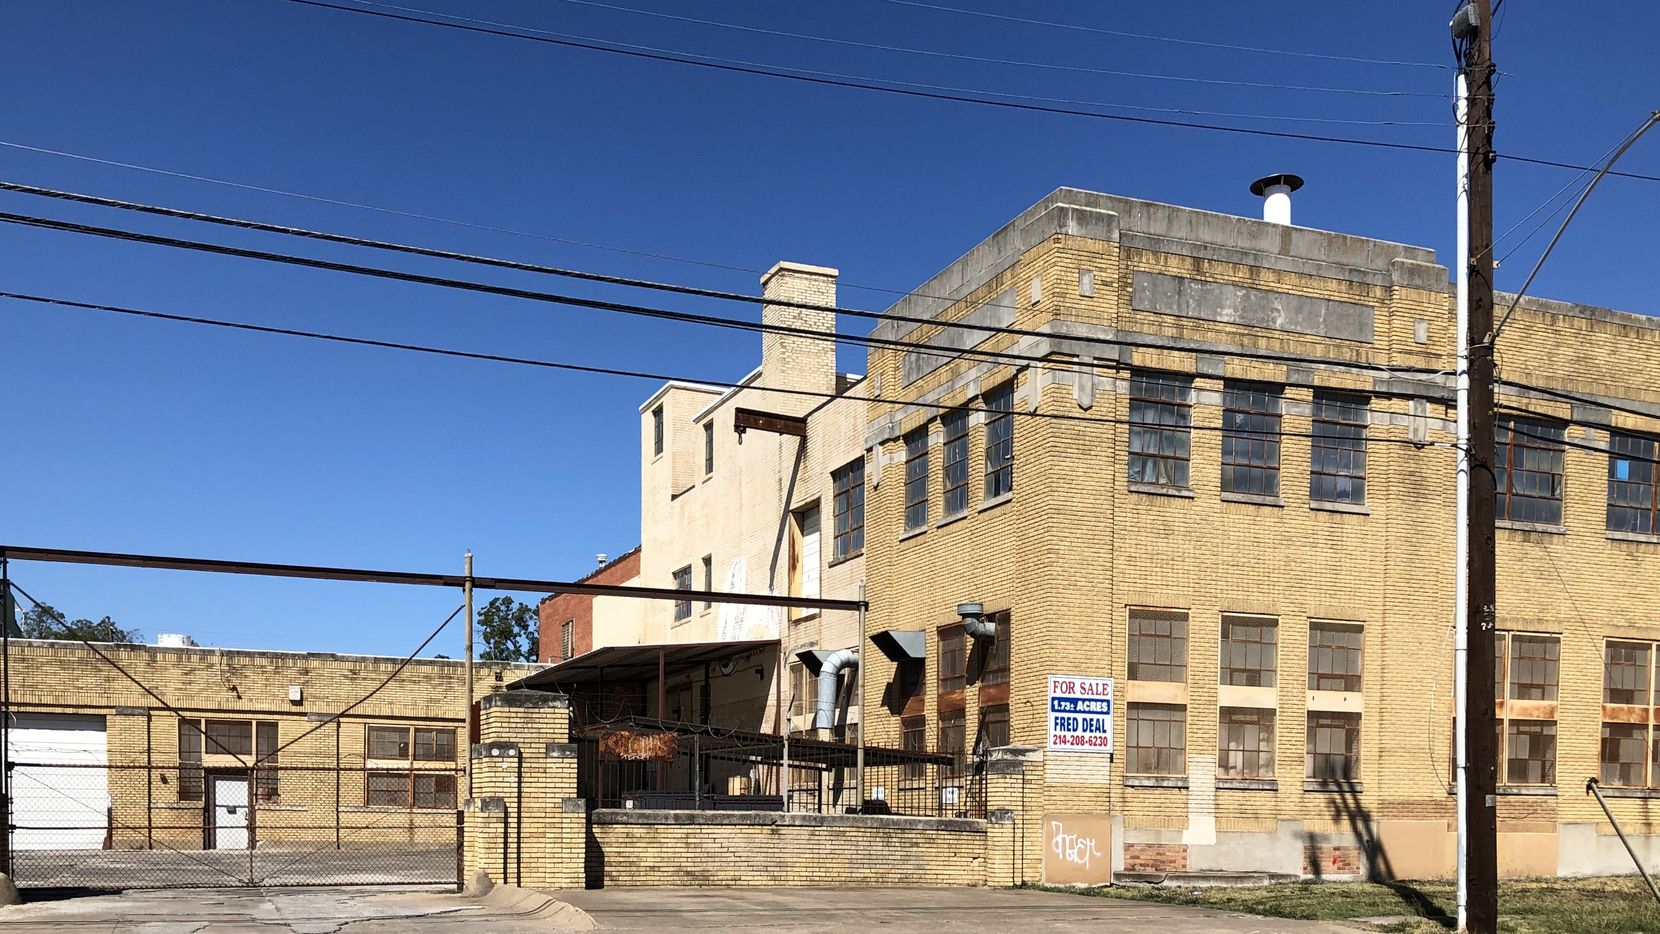 The Carroll Avenue building was constructed in 1928,